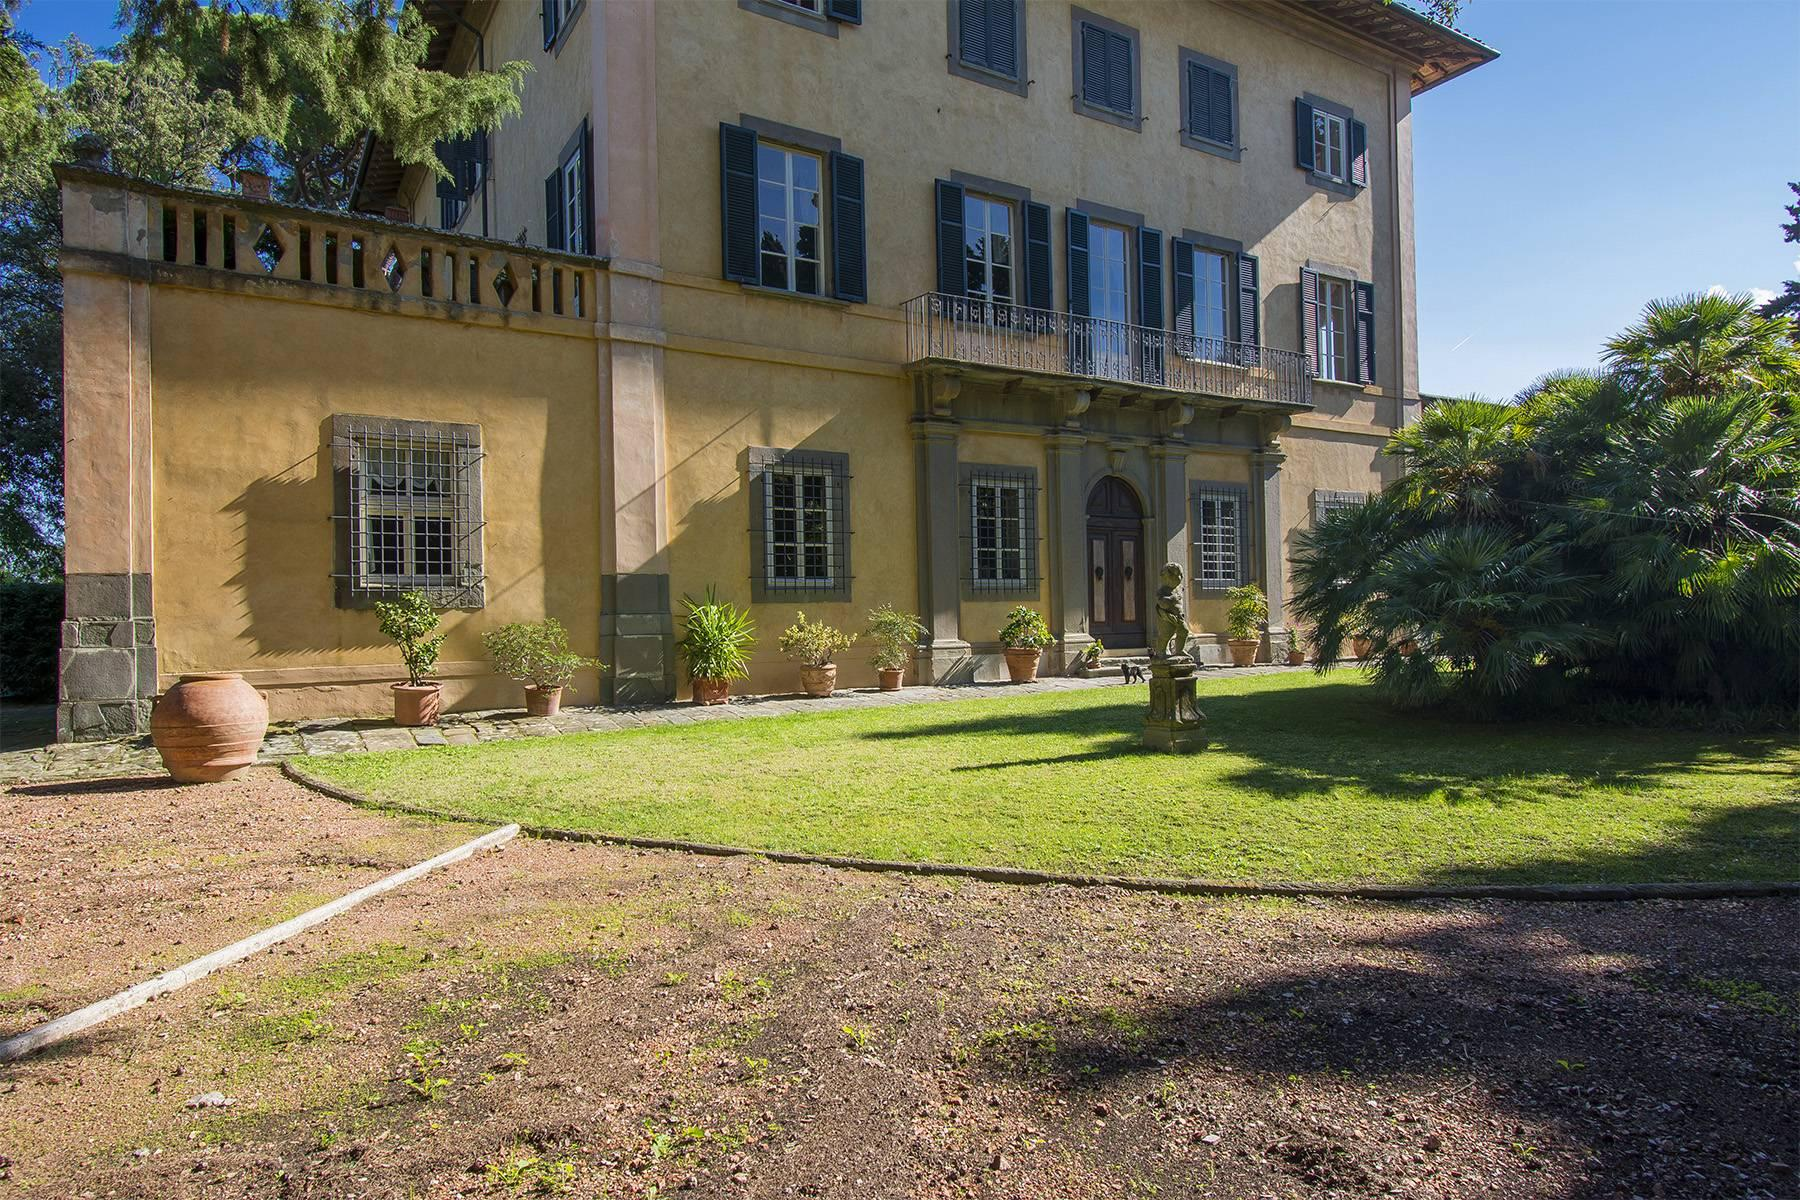 Charming Medicean Villa on the Tuscan hills - 39